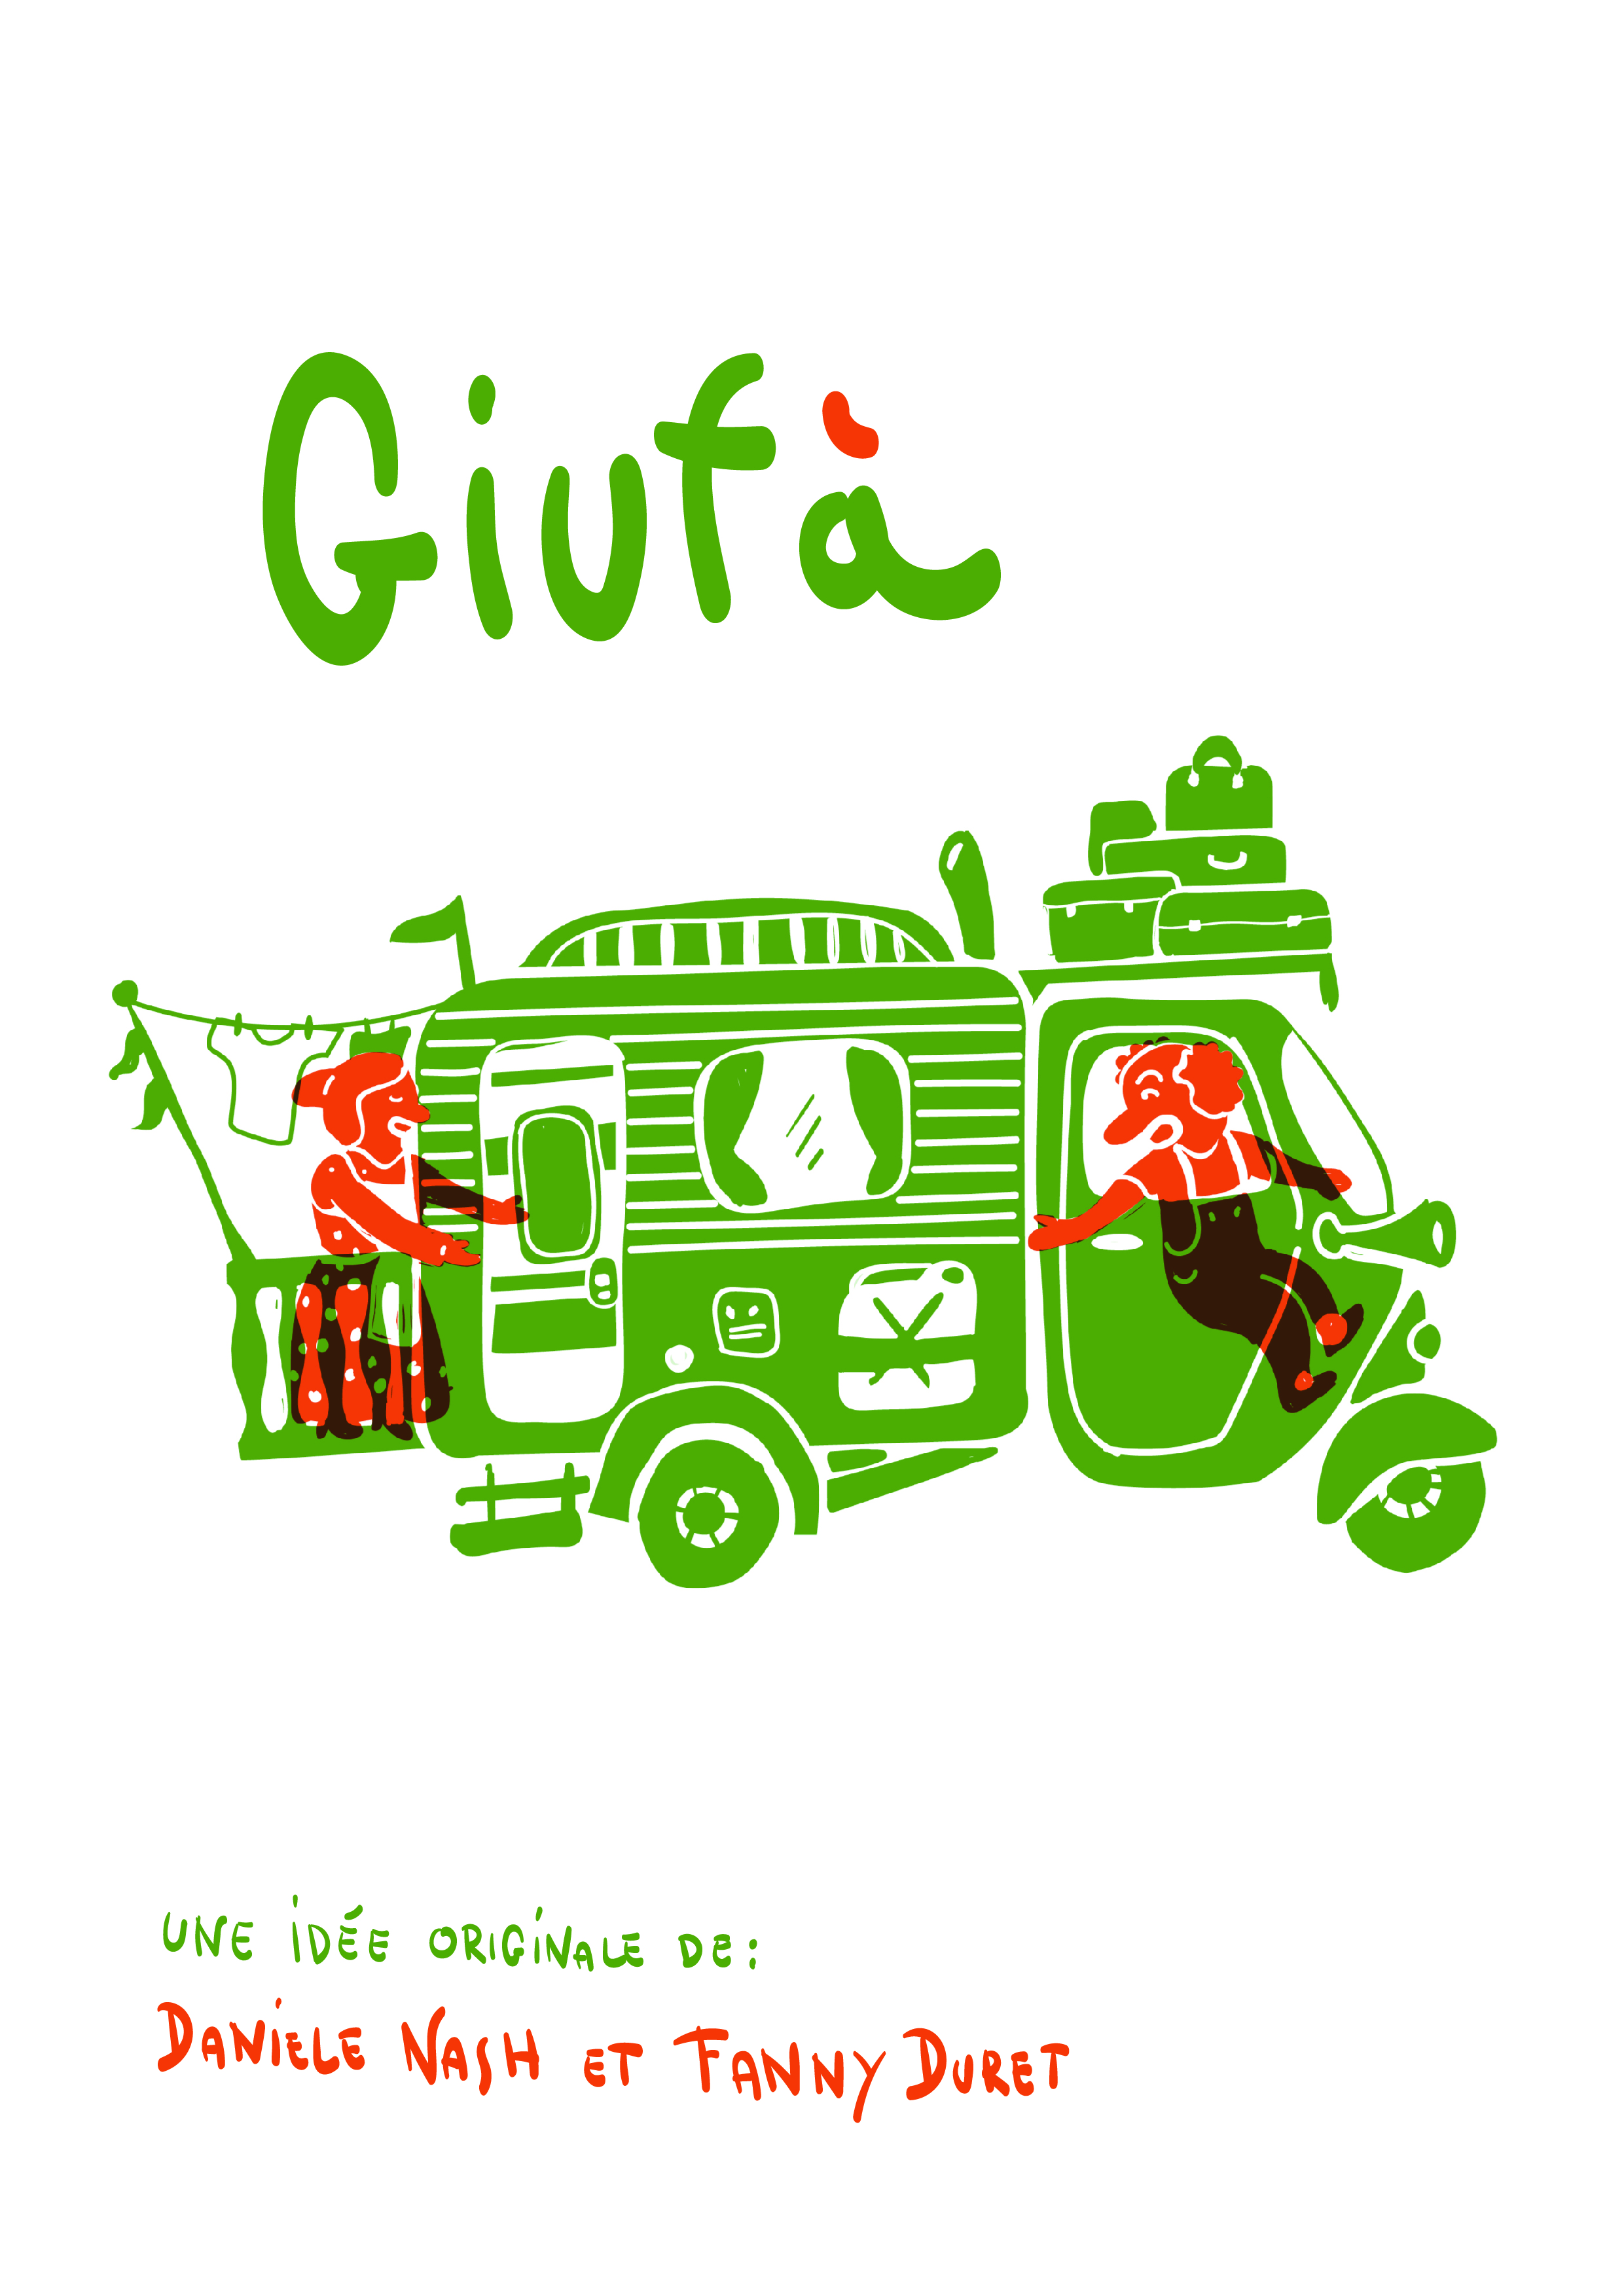 "New show for 2020! - ""Giufà"" (provisory title), from Cie Fada, written by Fanny Duret and Daniele Nash will come out in 2020!The project has already won 2 grants:- Grant SSA - FARS 2019 for writters in street art- Grant ""Writting in countryside"" from Latitude 50, Center of circus and street art in Belgium, in collaboration with the SSA (The Swiss Society of writters)Thanks at those 2 structures for their trust and collaboration!"